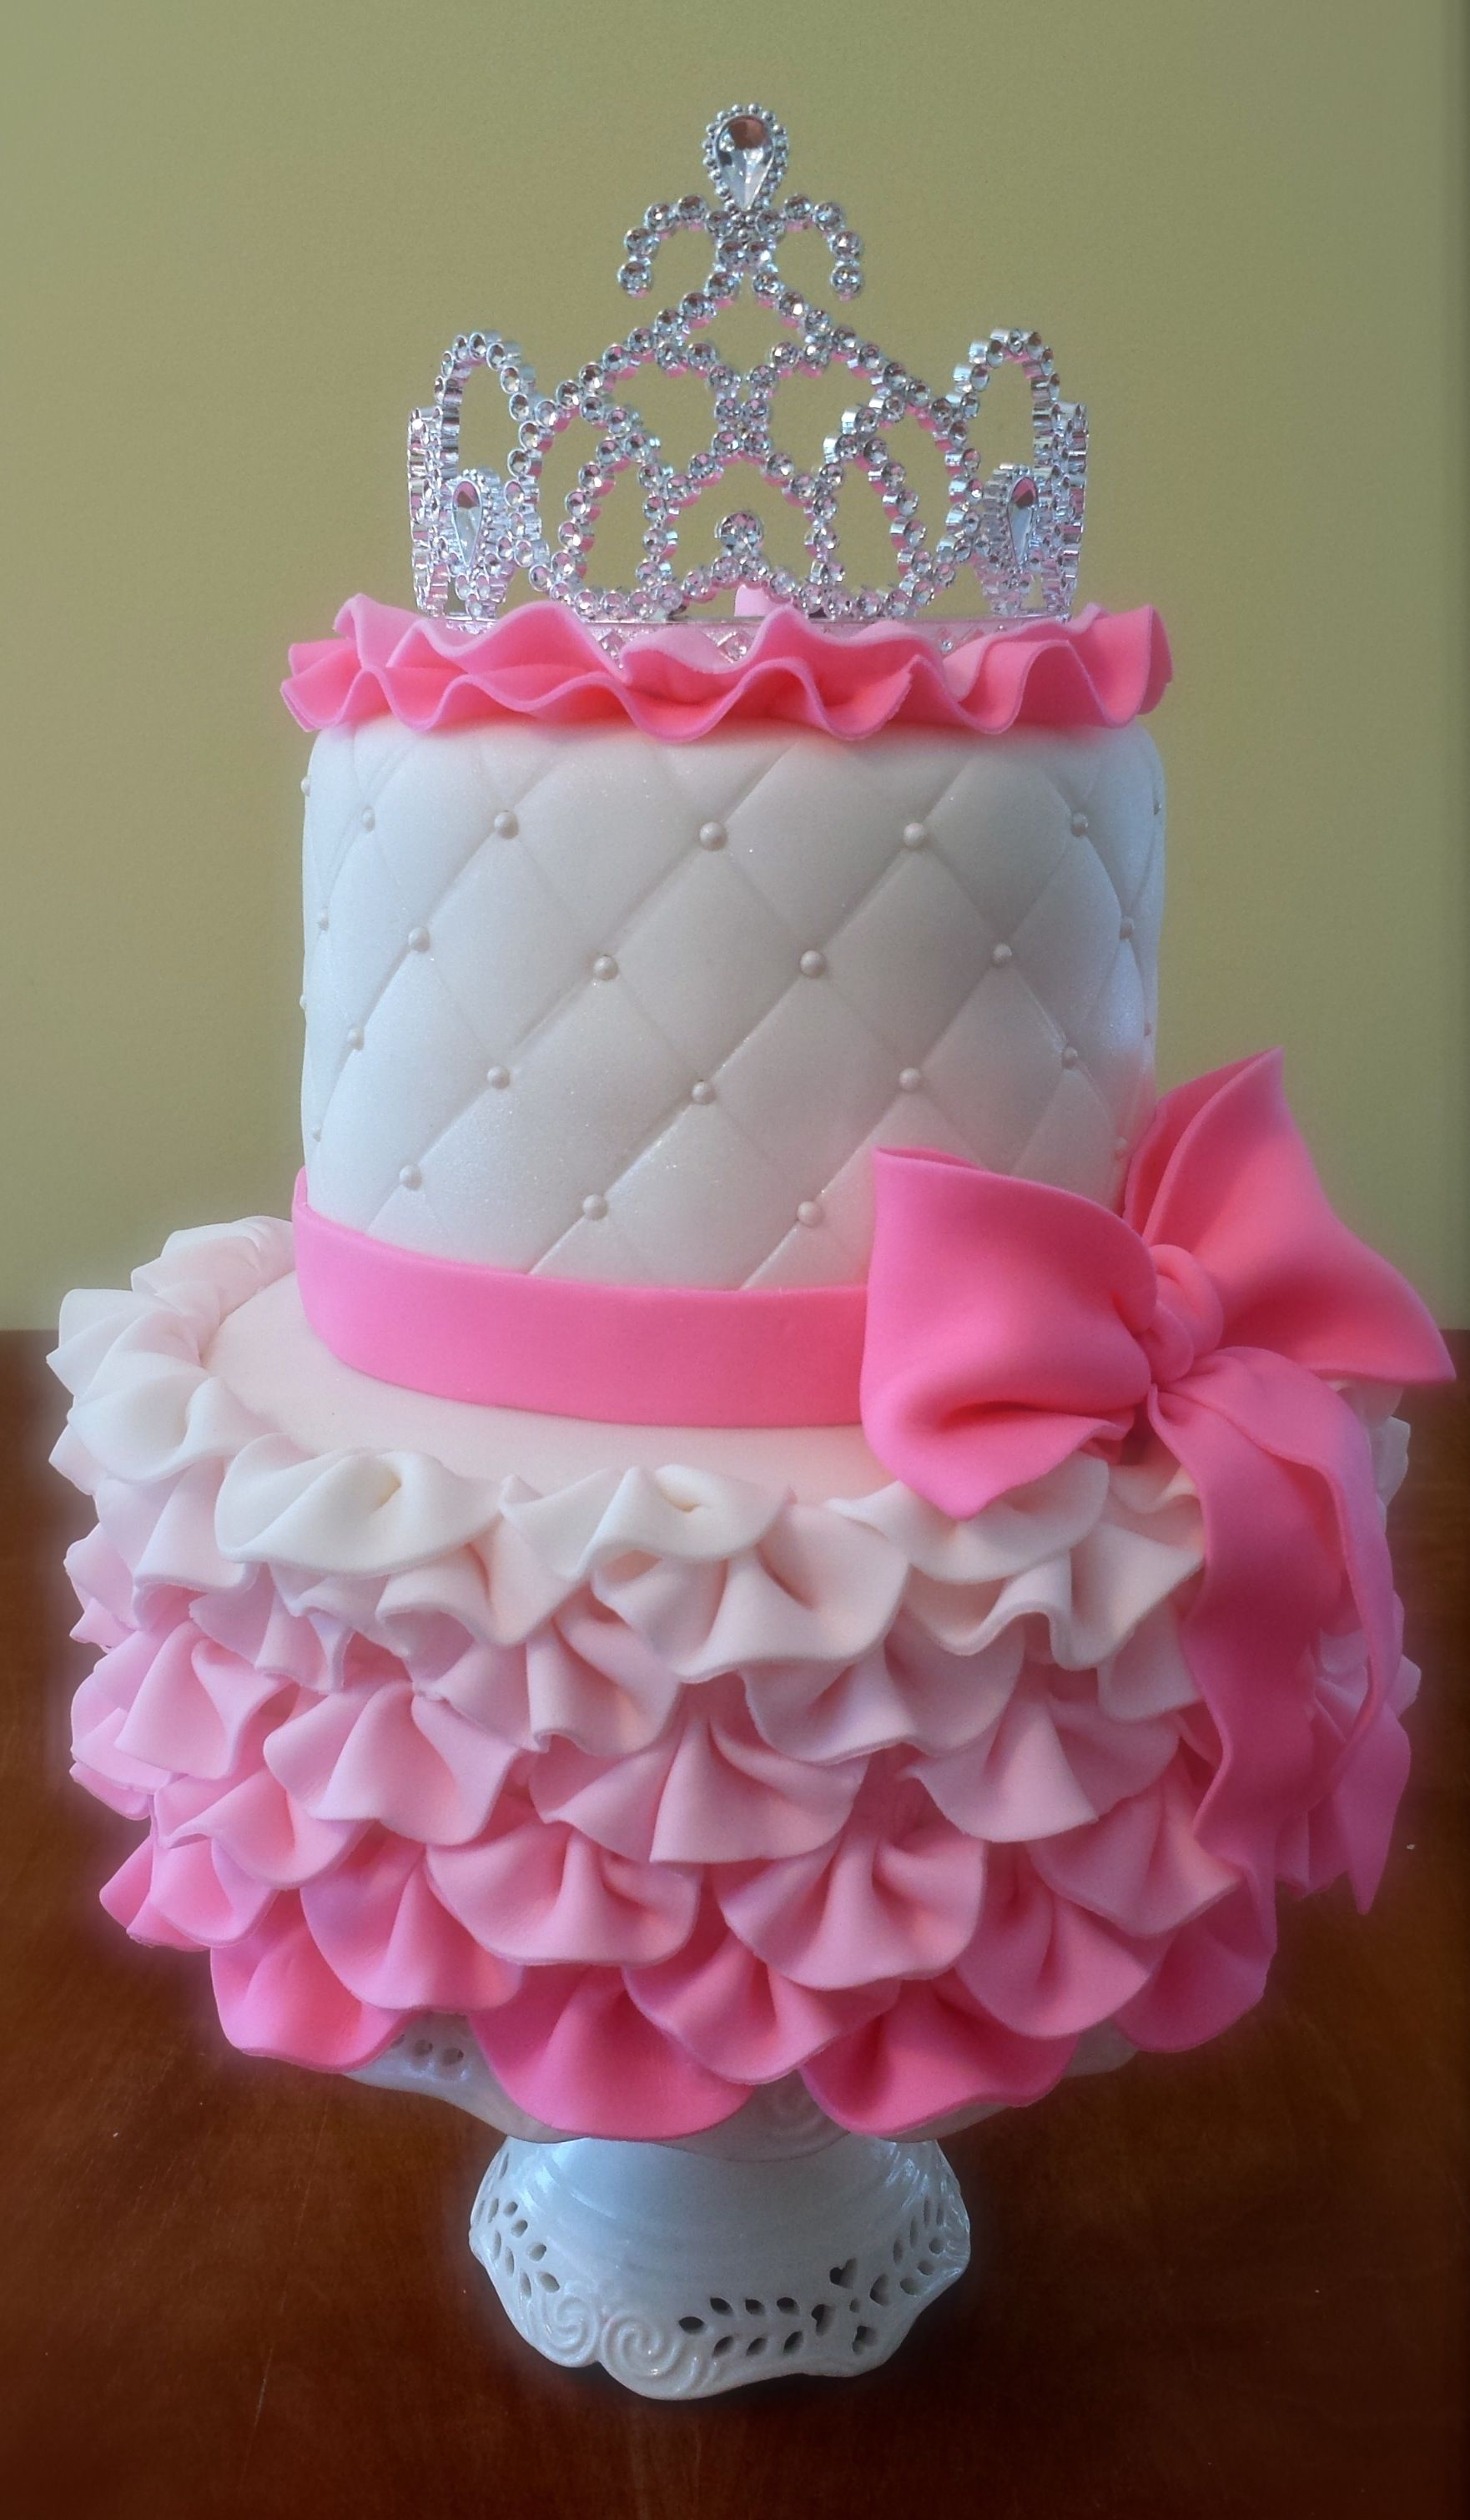 Cake Design For 2 Year Old Baby Girl : PRINCESS CAKE IDEAS Cake tutorial, Princess and Cake